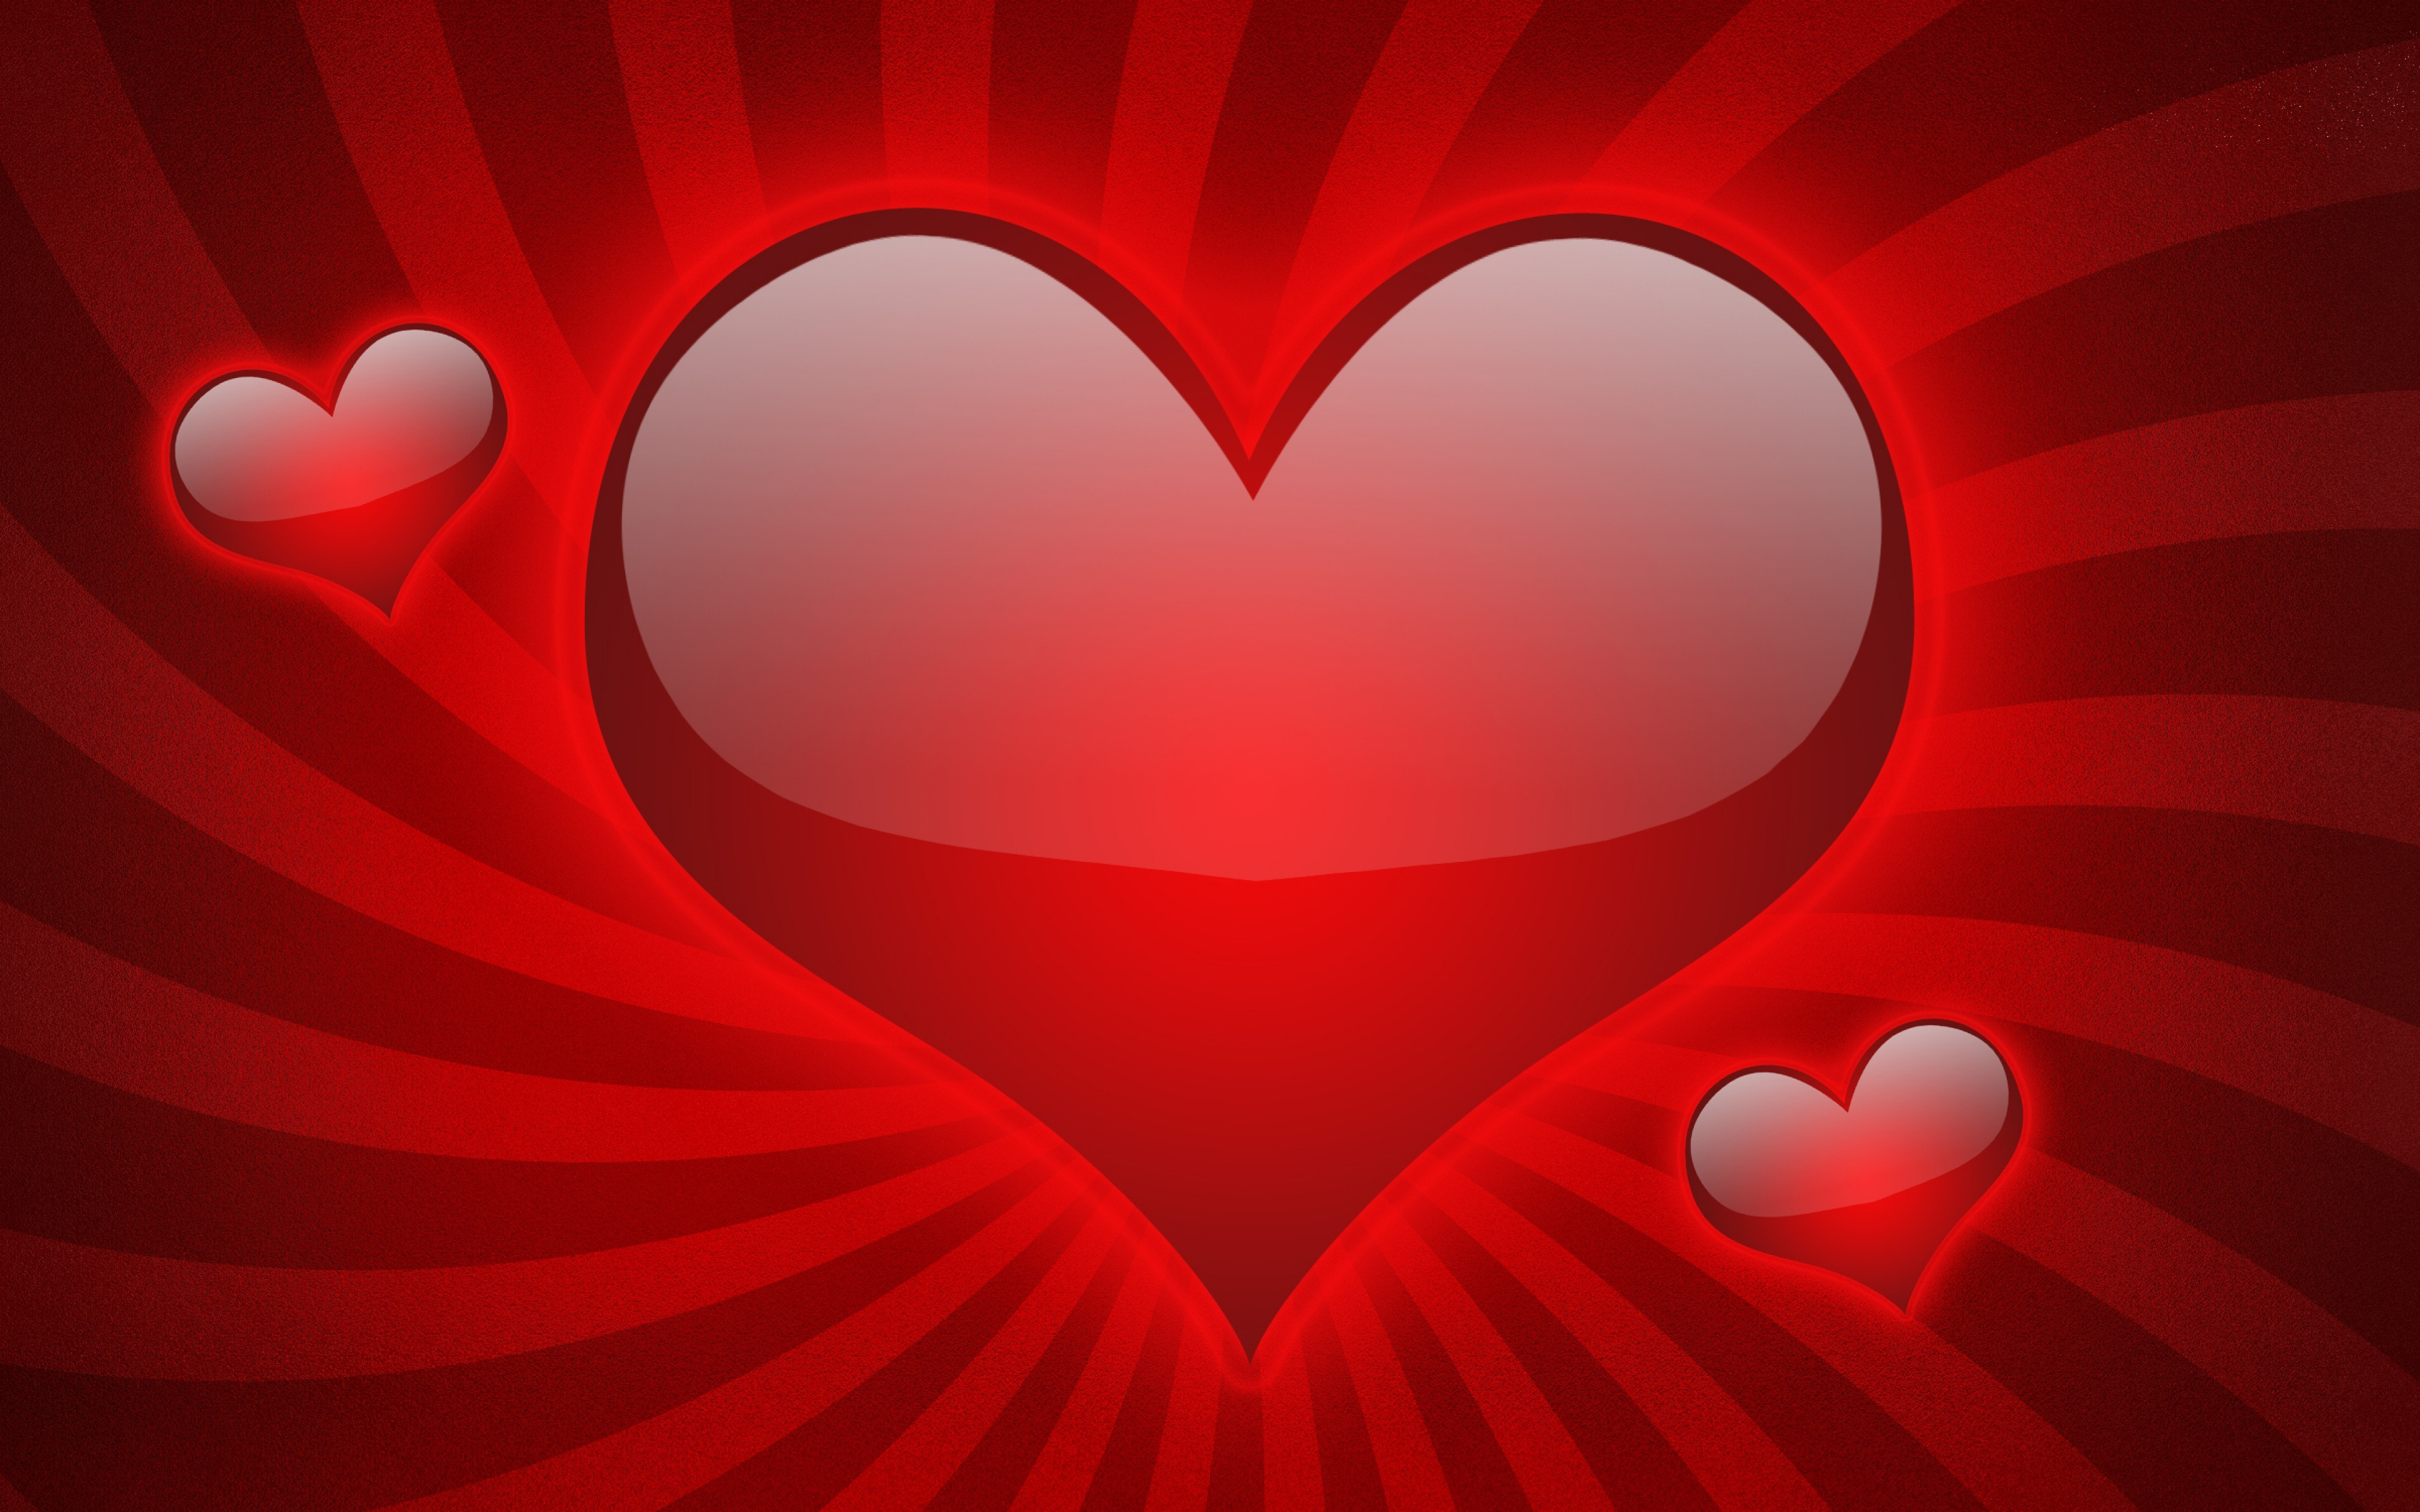 Red Heart with Love New Hd Red Heart Desktop 2360 Love Hd Desktop Wallpaper Of Awesome 41 Ideas Red Heart with Love